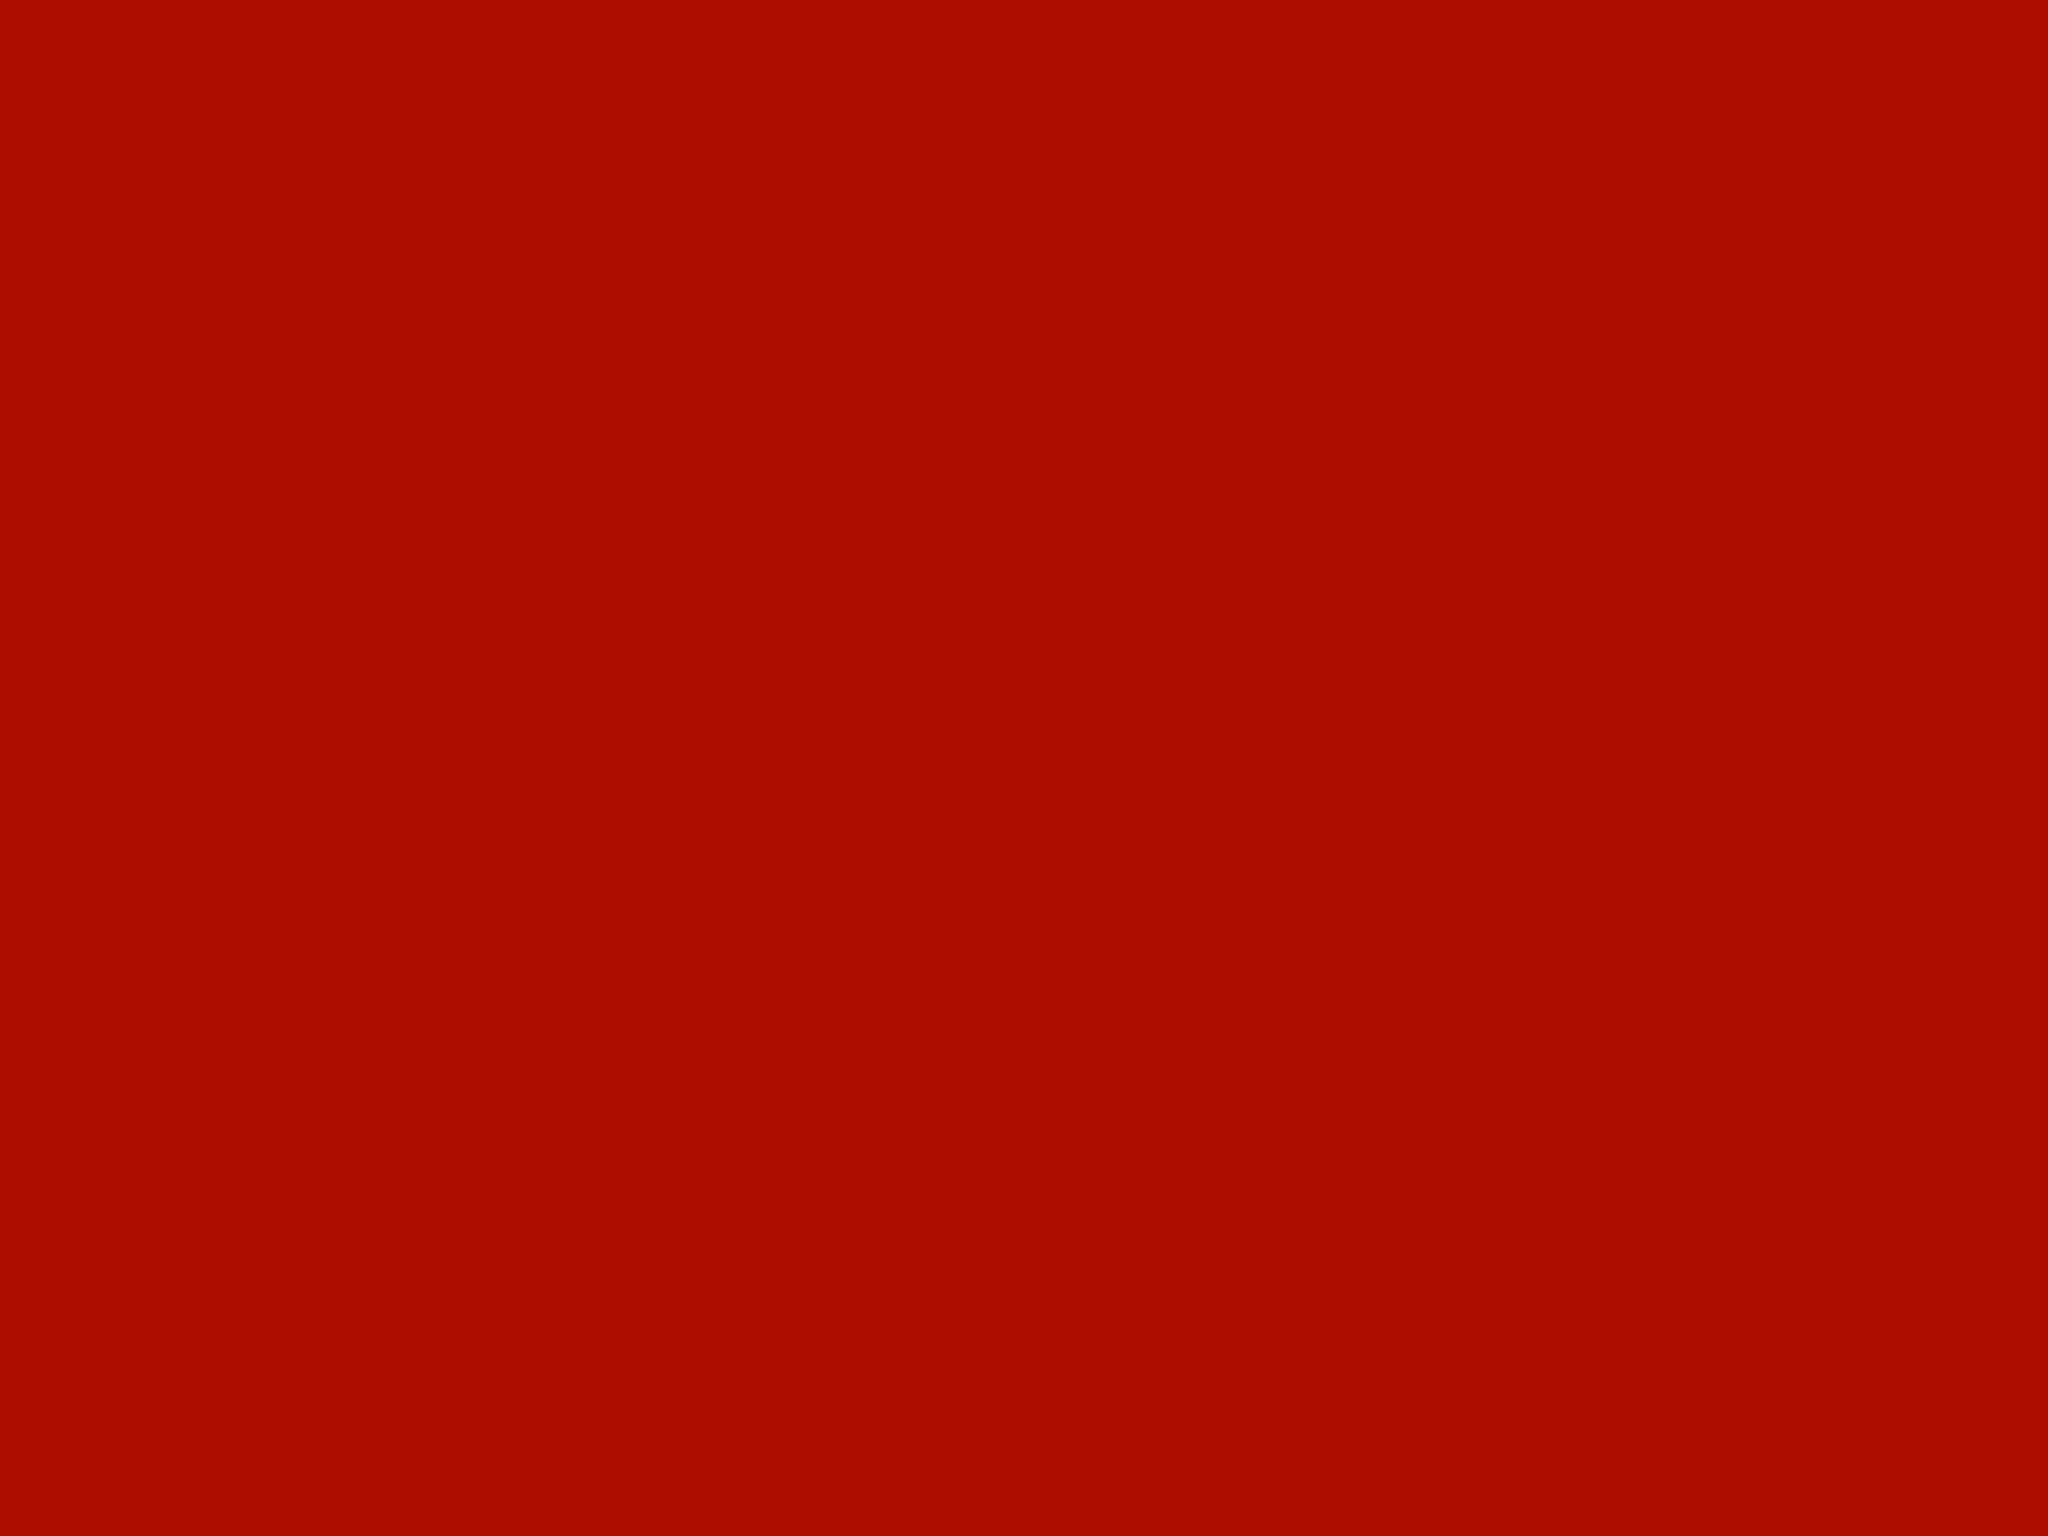 2048x1536 Mordant Red 19 Solid Color Background